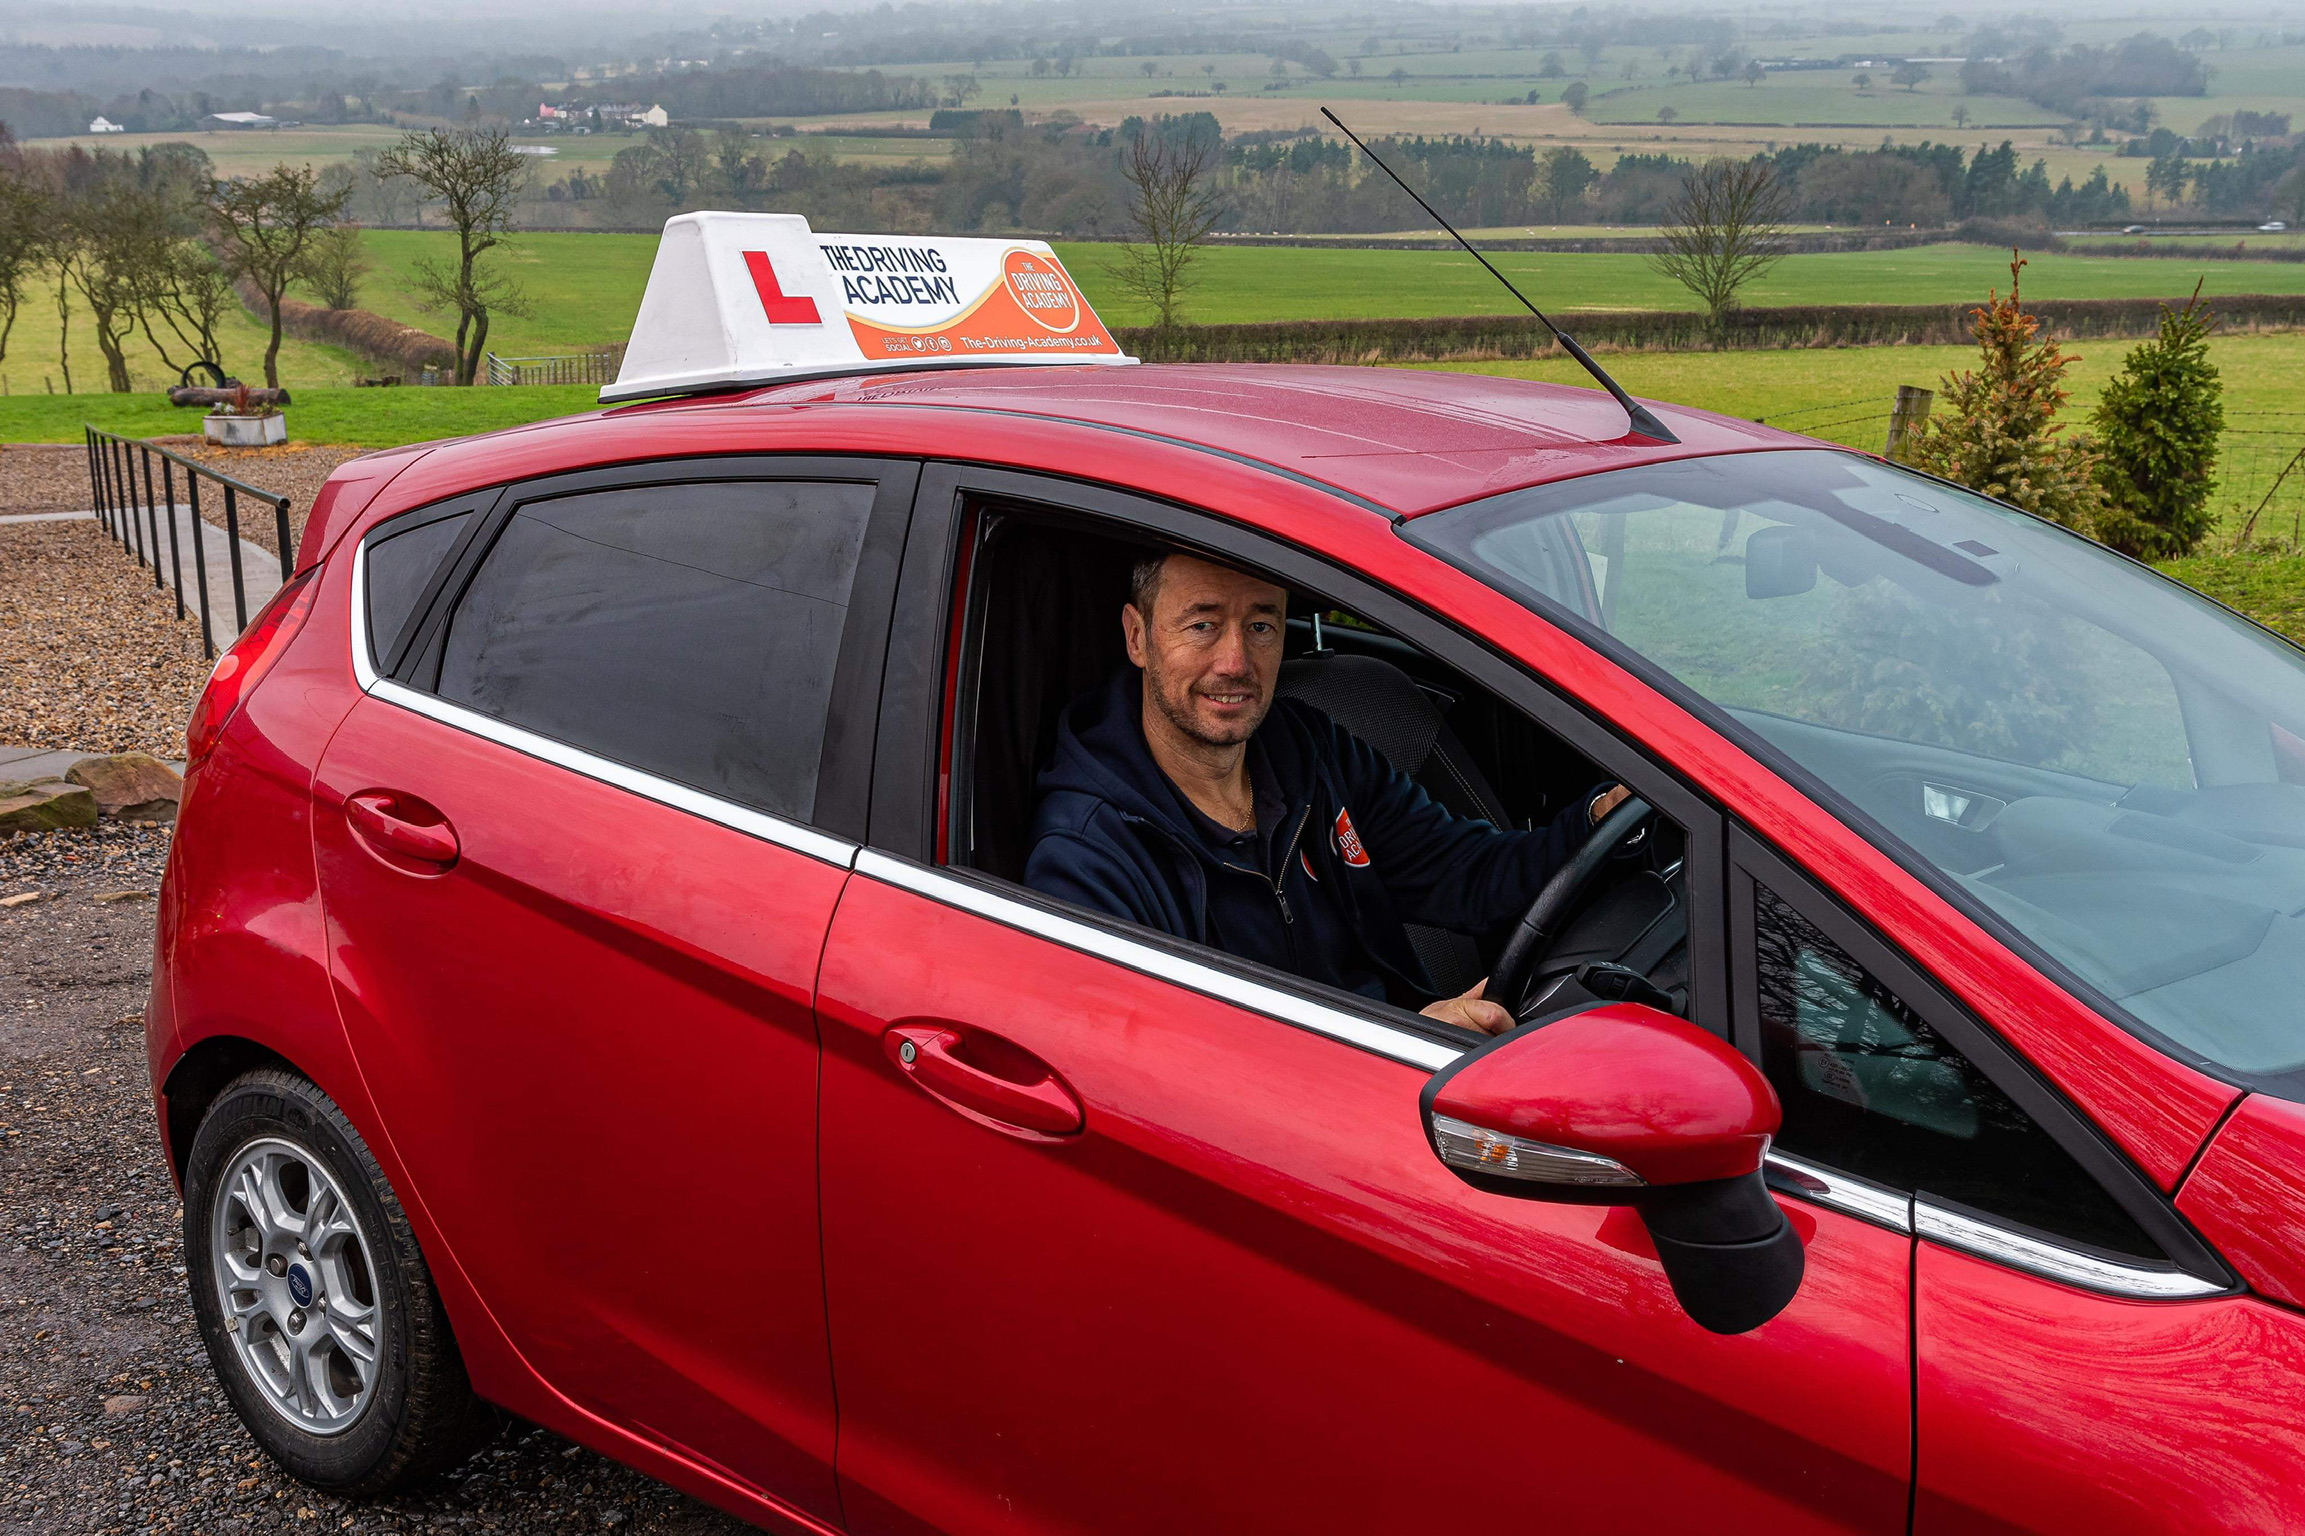 Peter Williams driving lessons